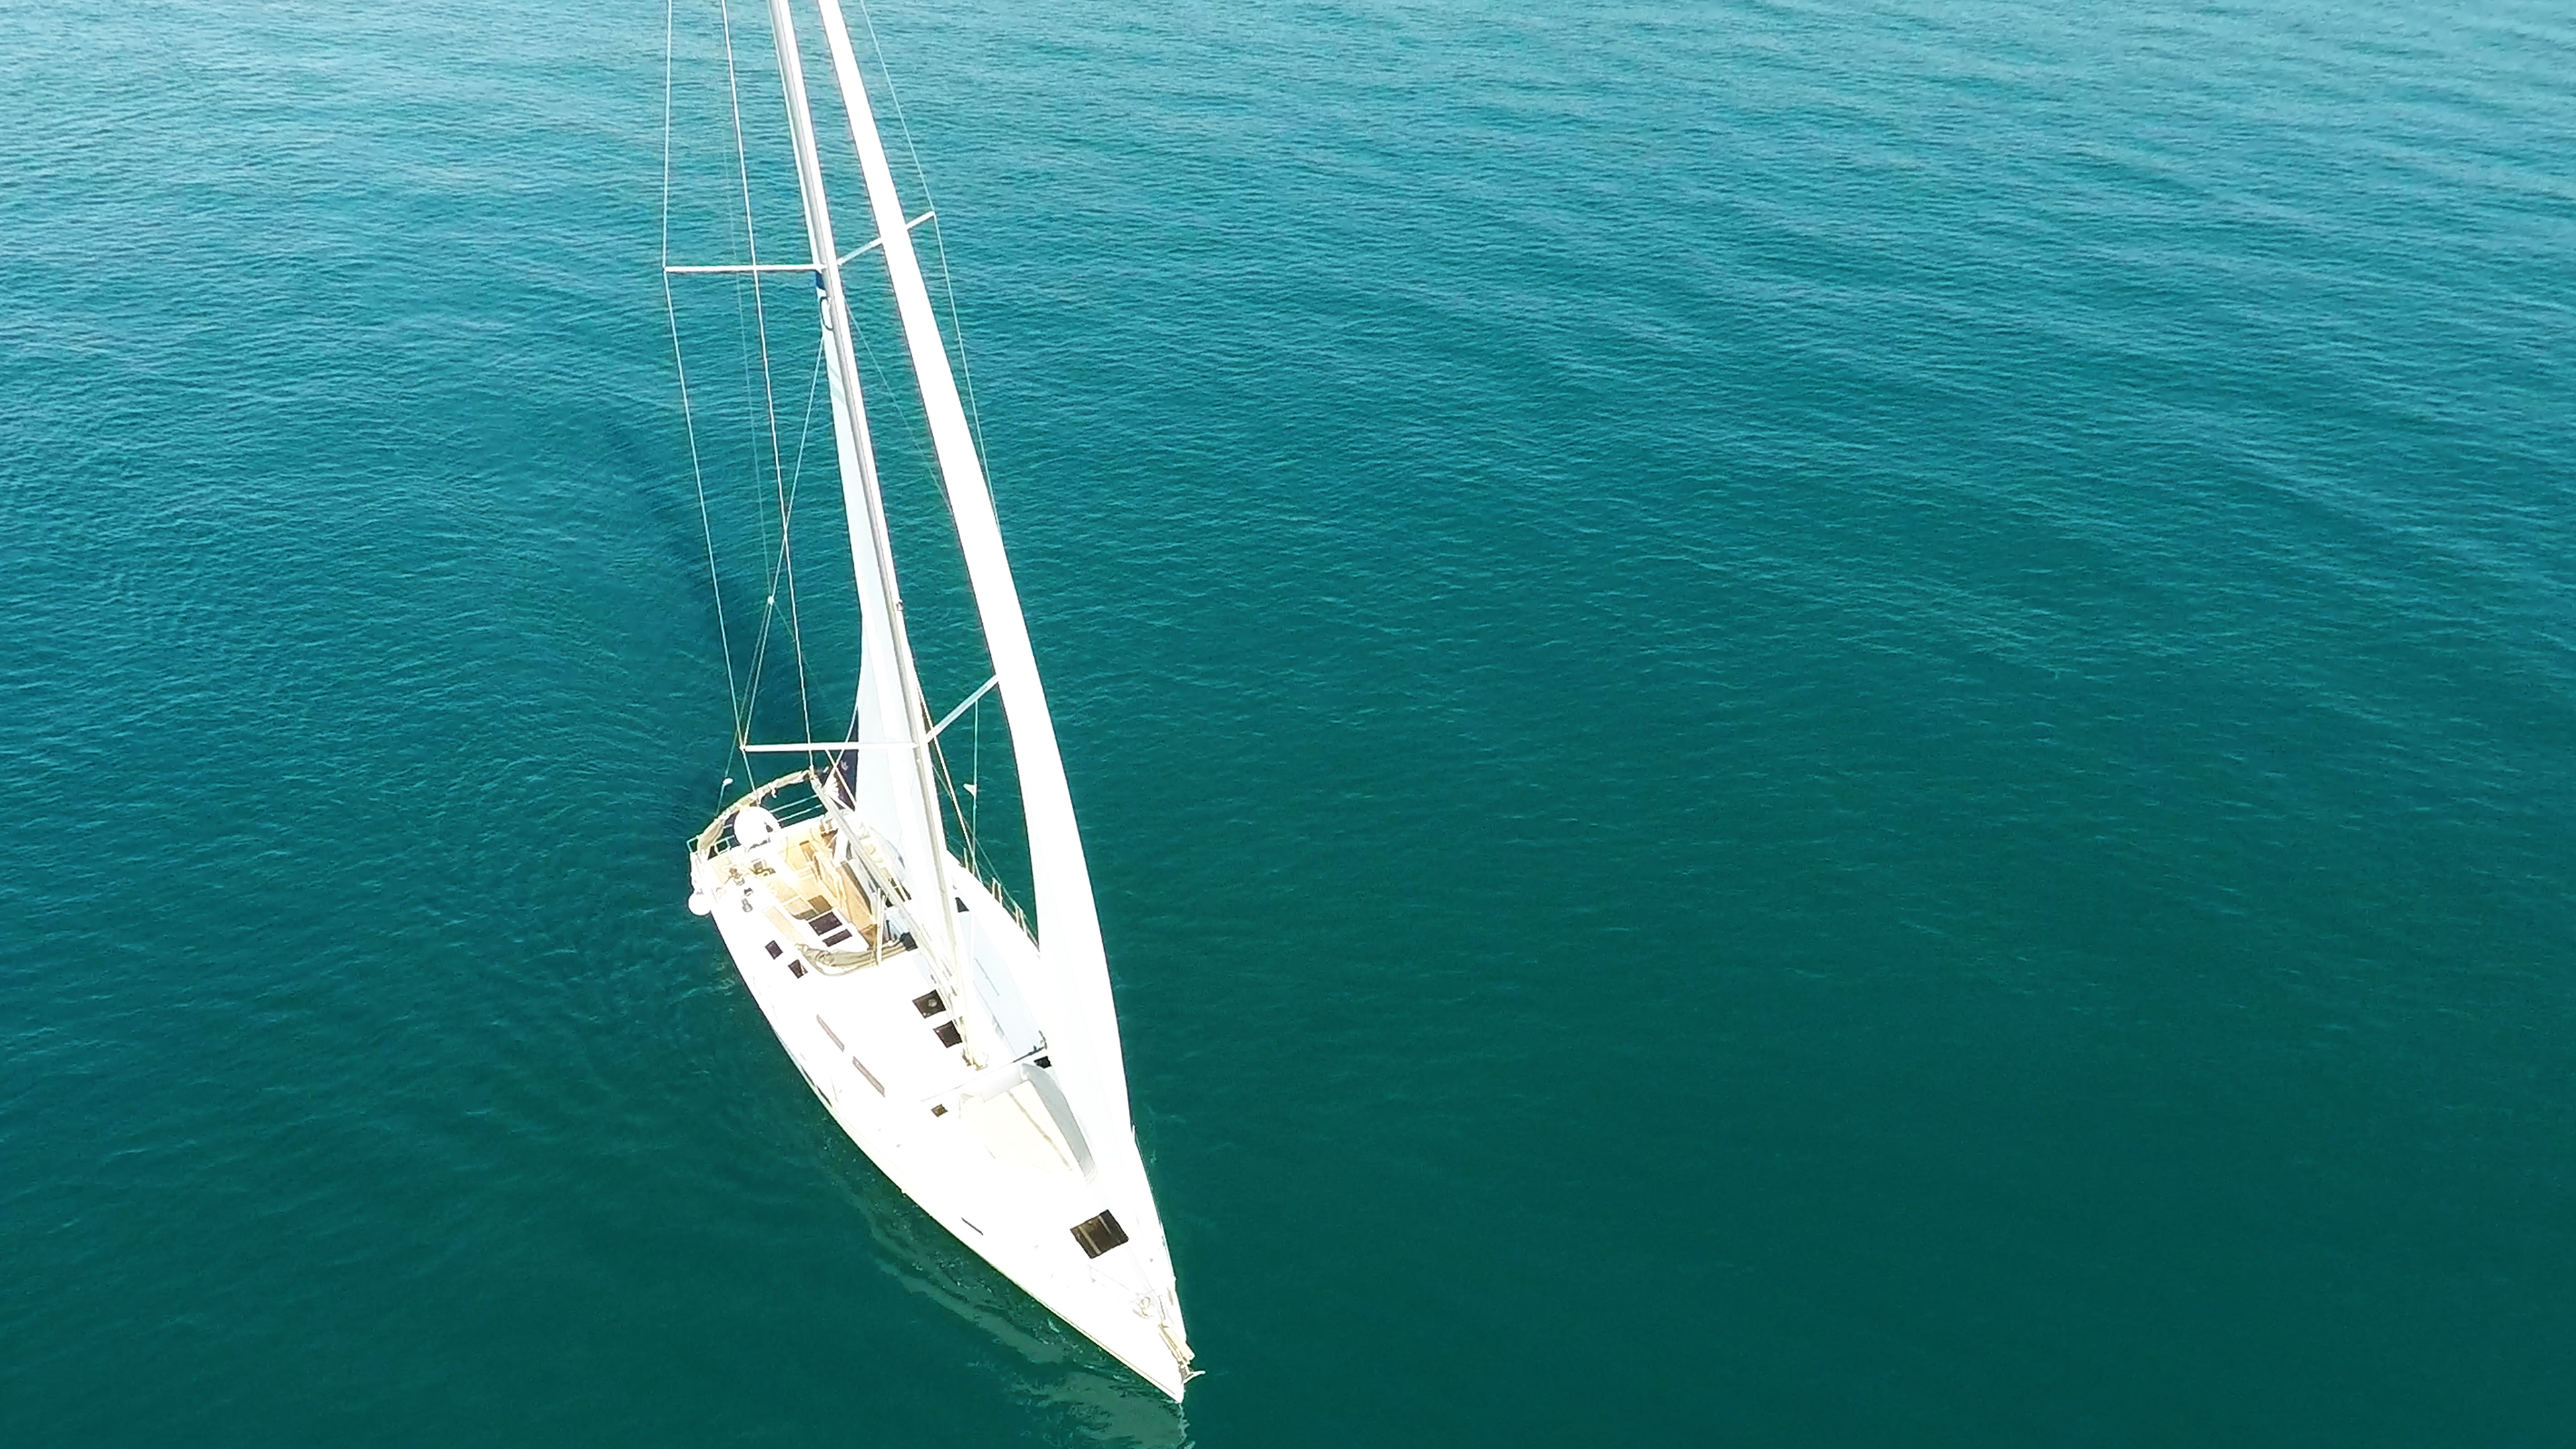 sailing yacht view from above